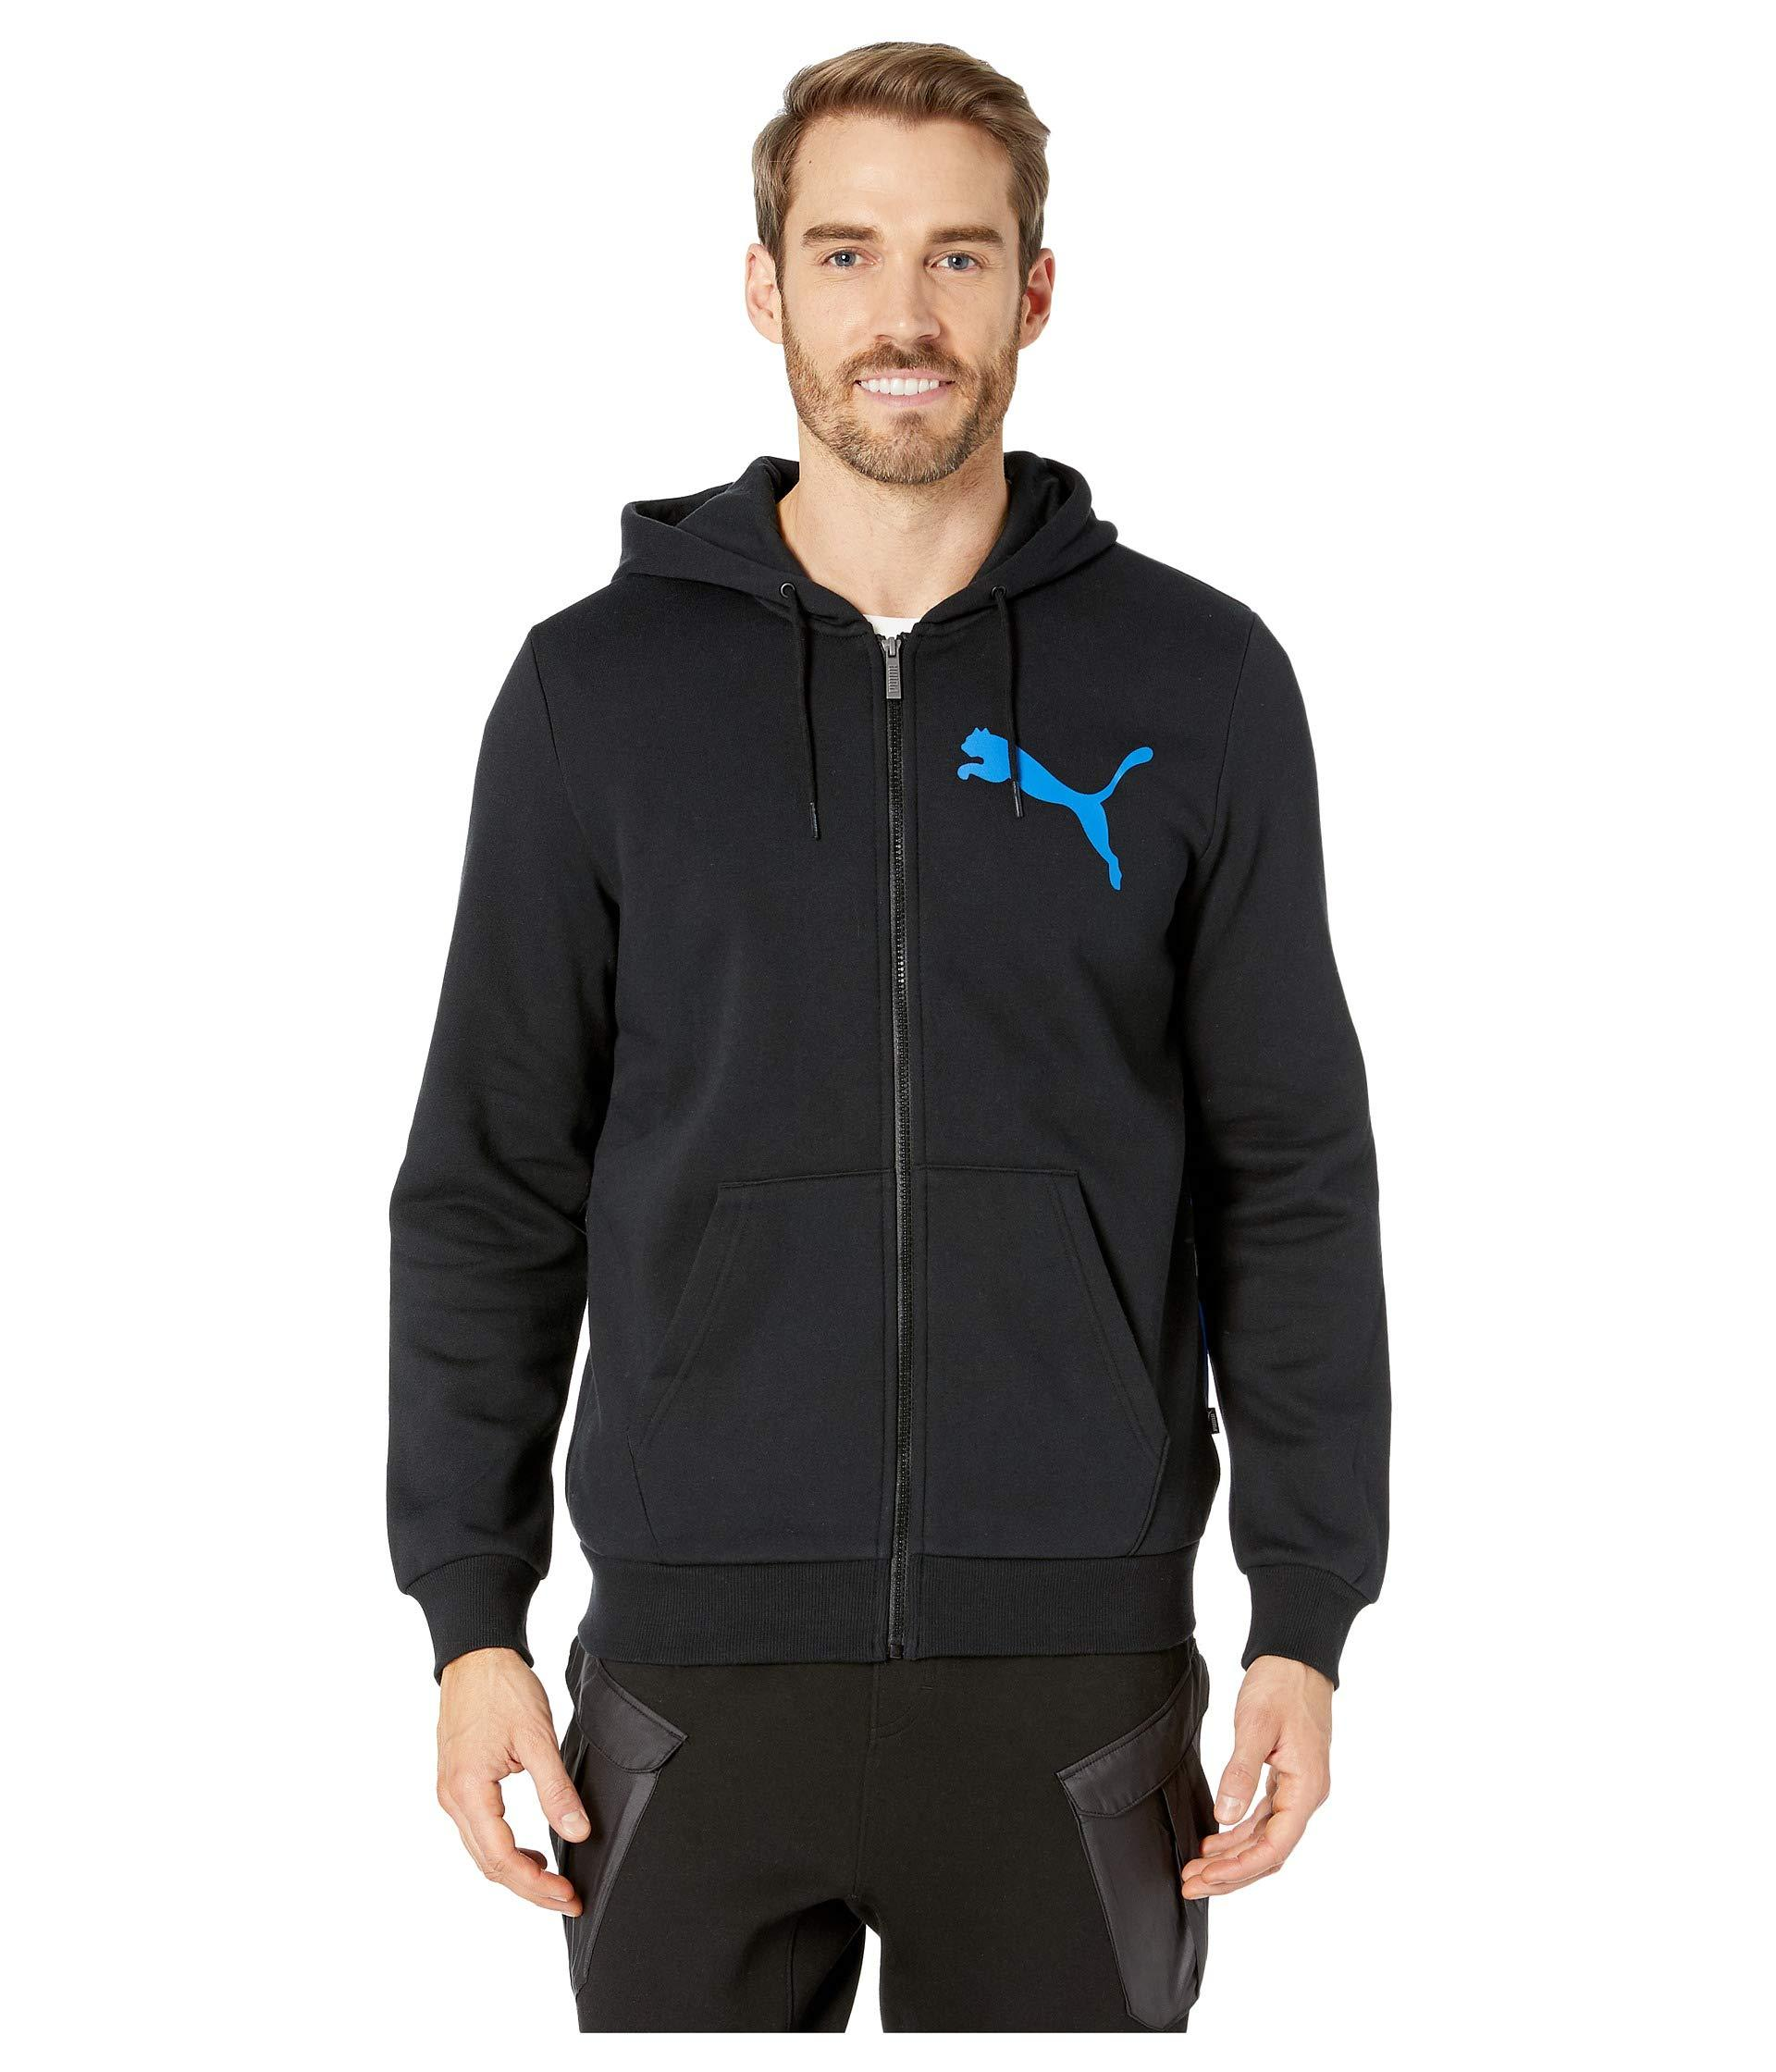 Lyst PUMA Big Logo Full Zip Hoodie in Black for Men